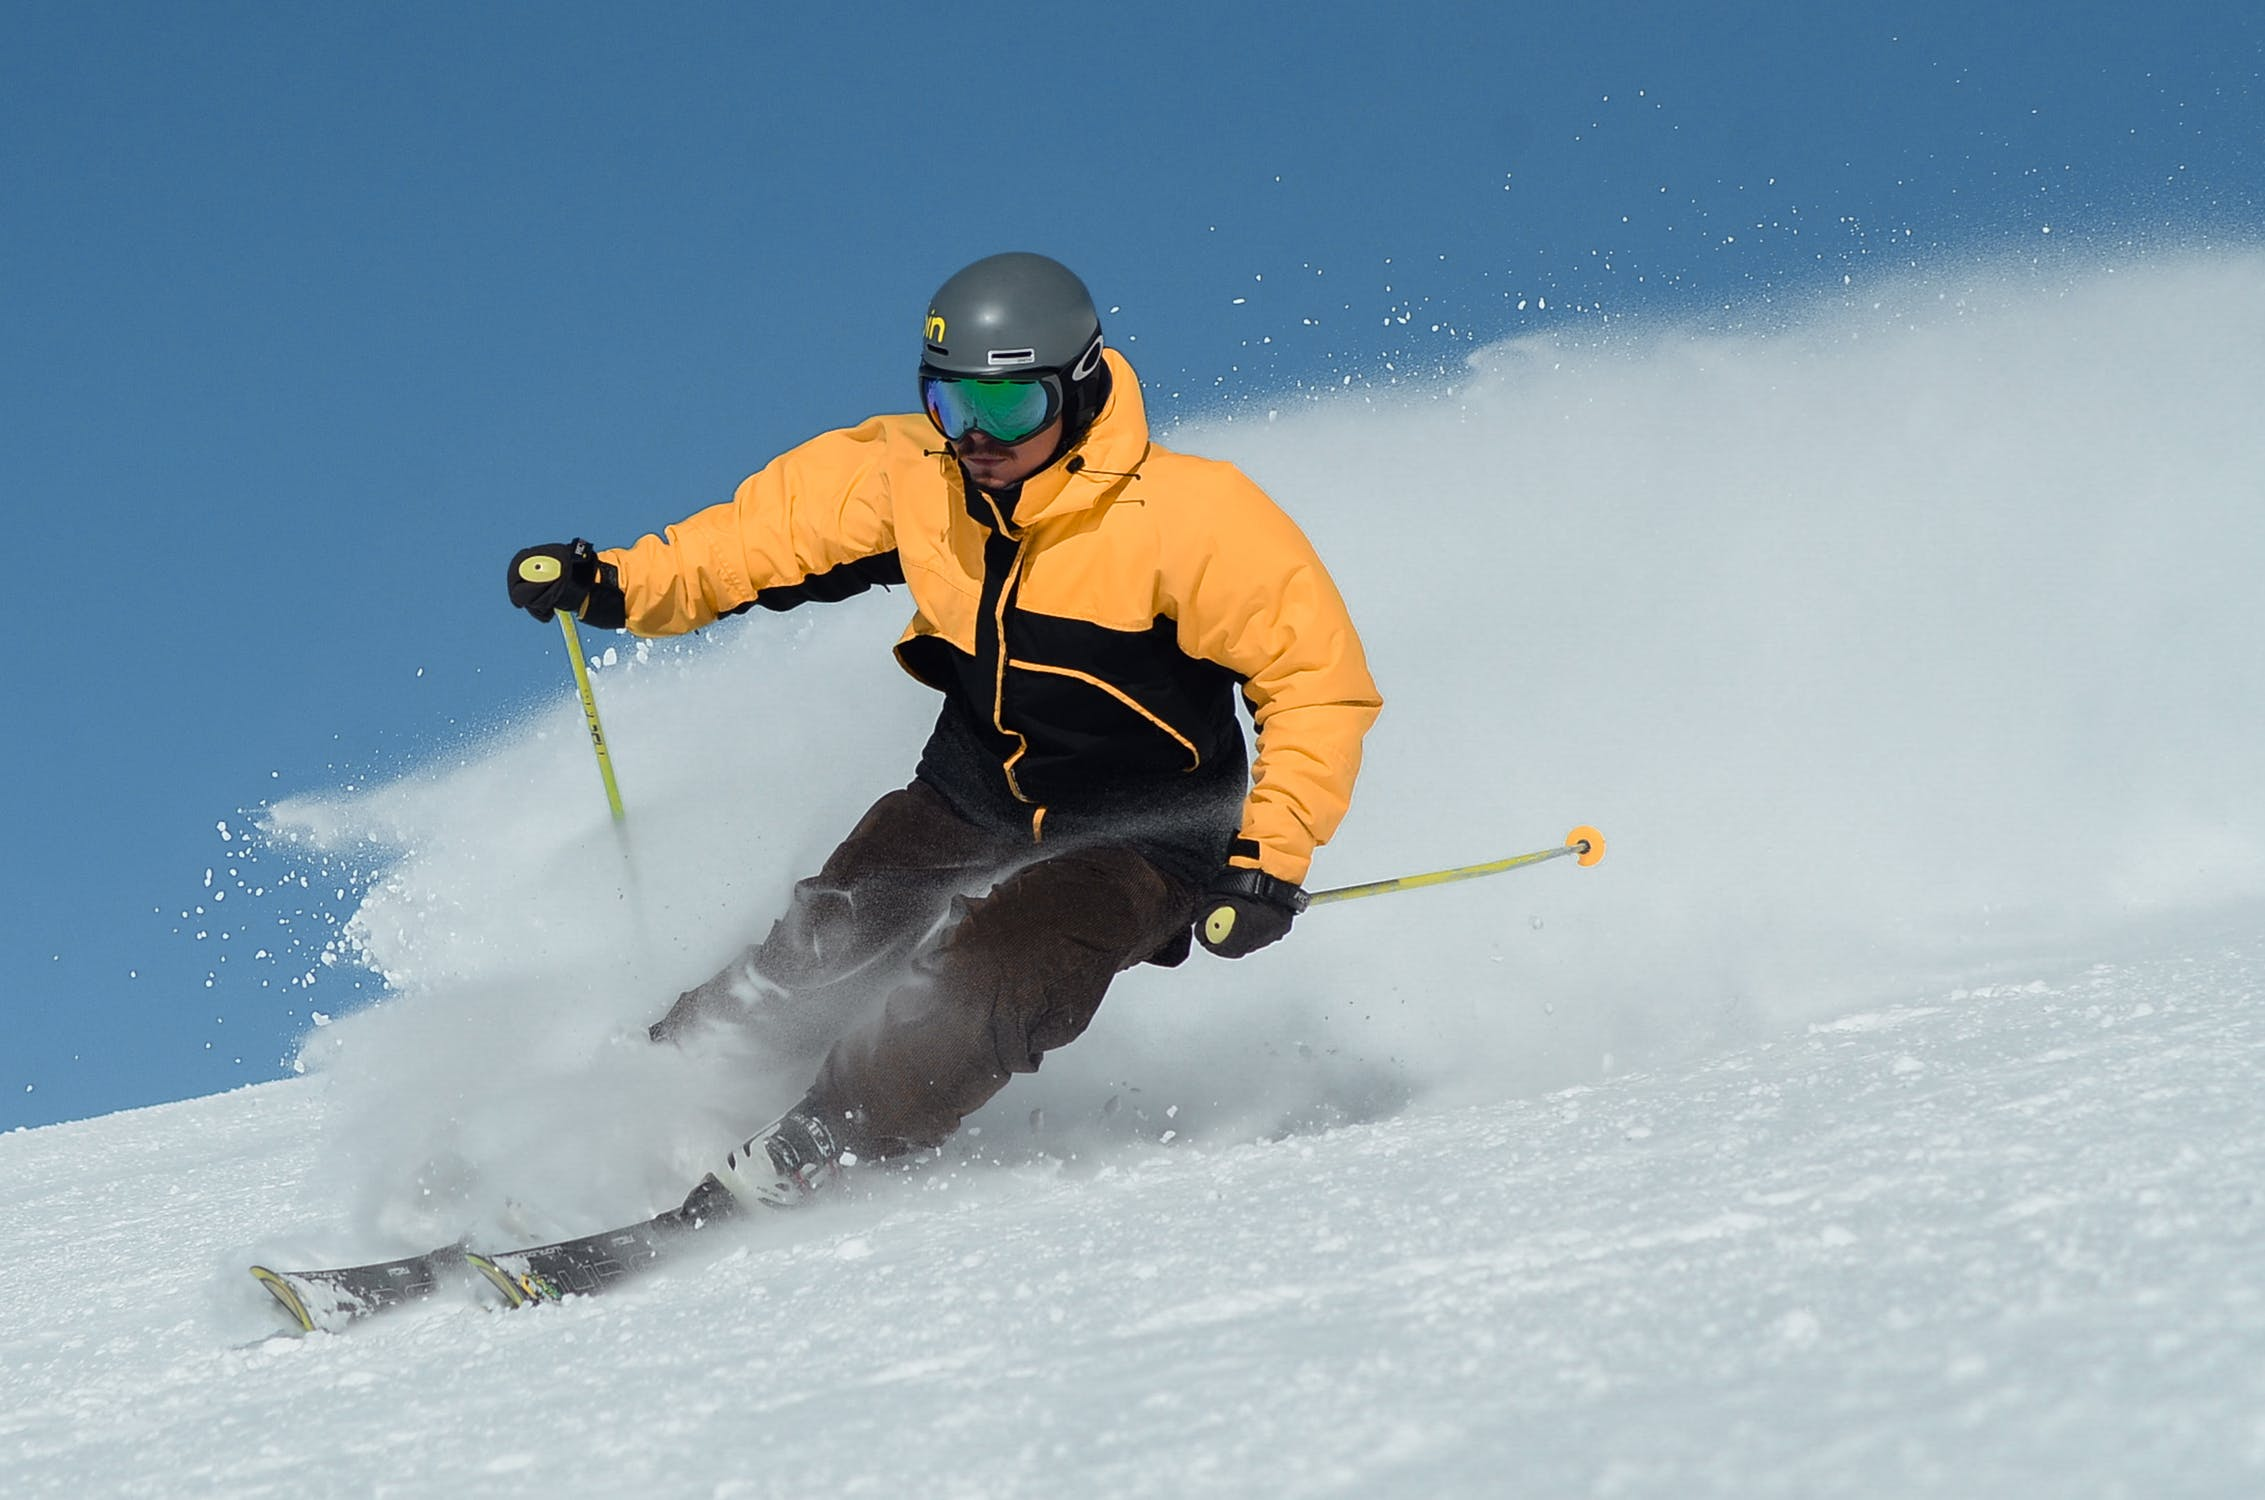 A man in a yellow jacket and ski gear skis down a snowy slope with a blue sky in the background